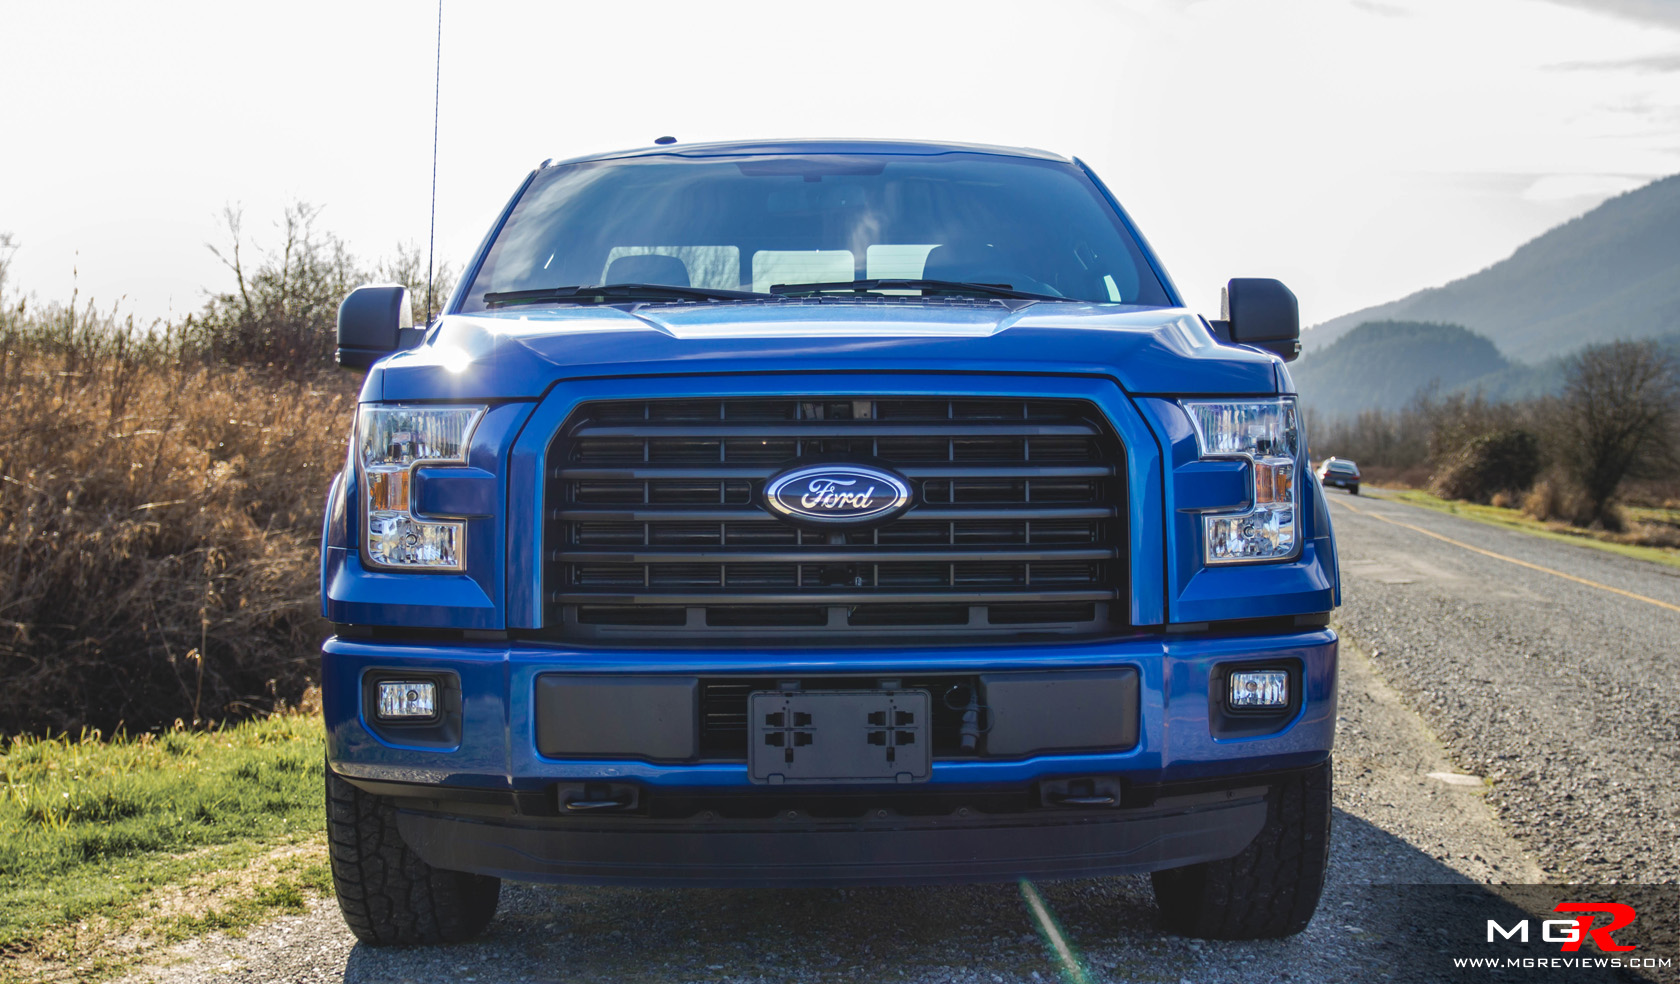 Fantastic Review 2015 Ford F150 XLT EcoBoost  MGReviews